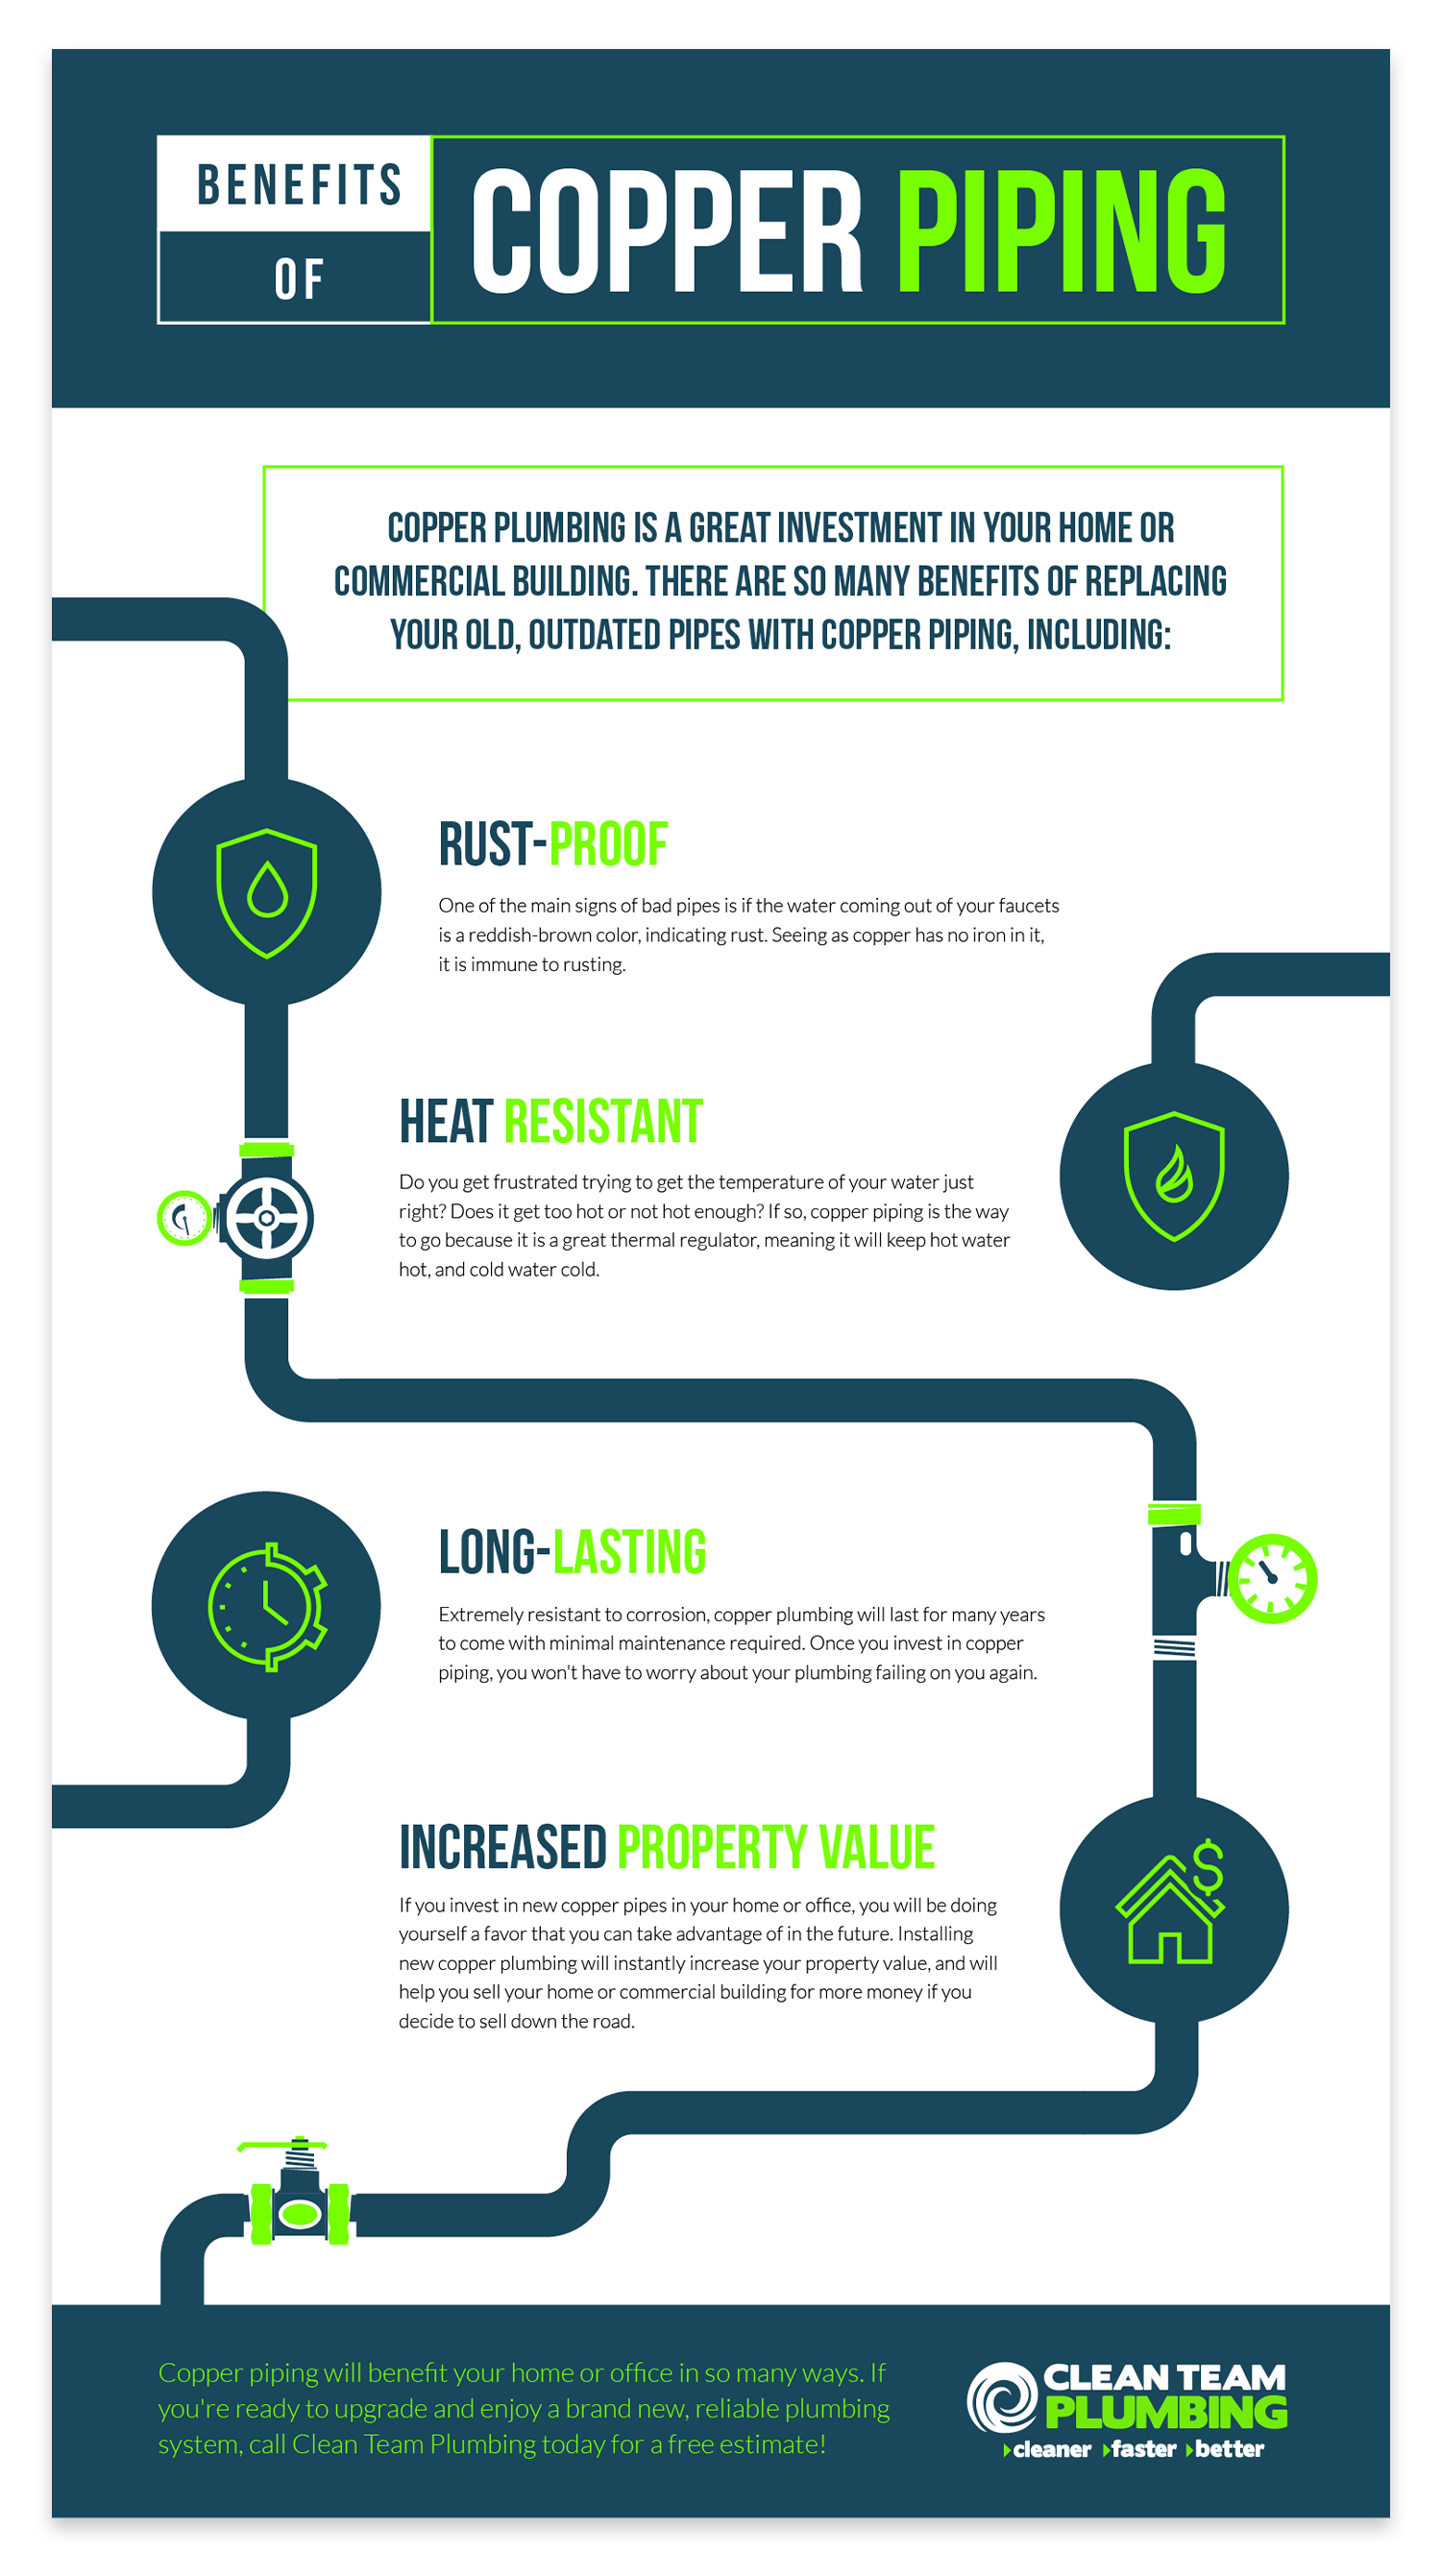 Benefits of Copper Piping Infographic